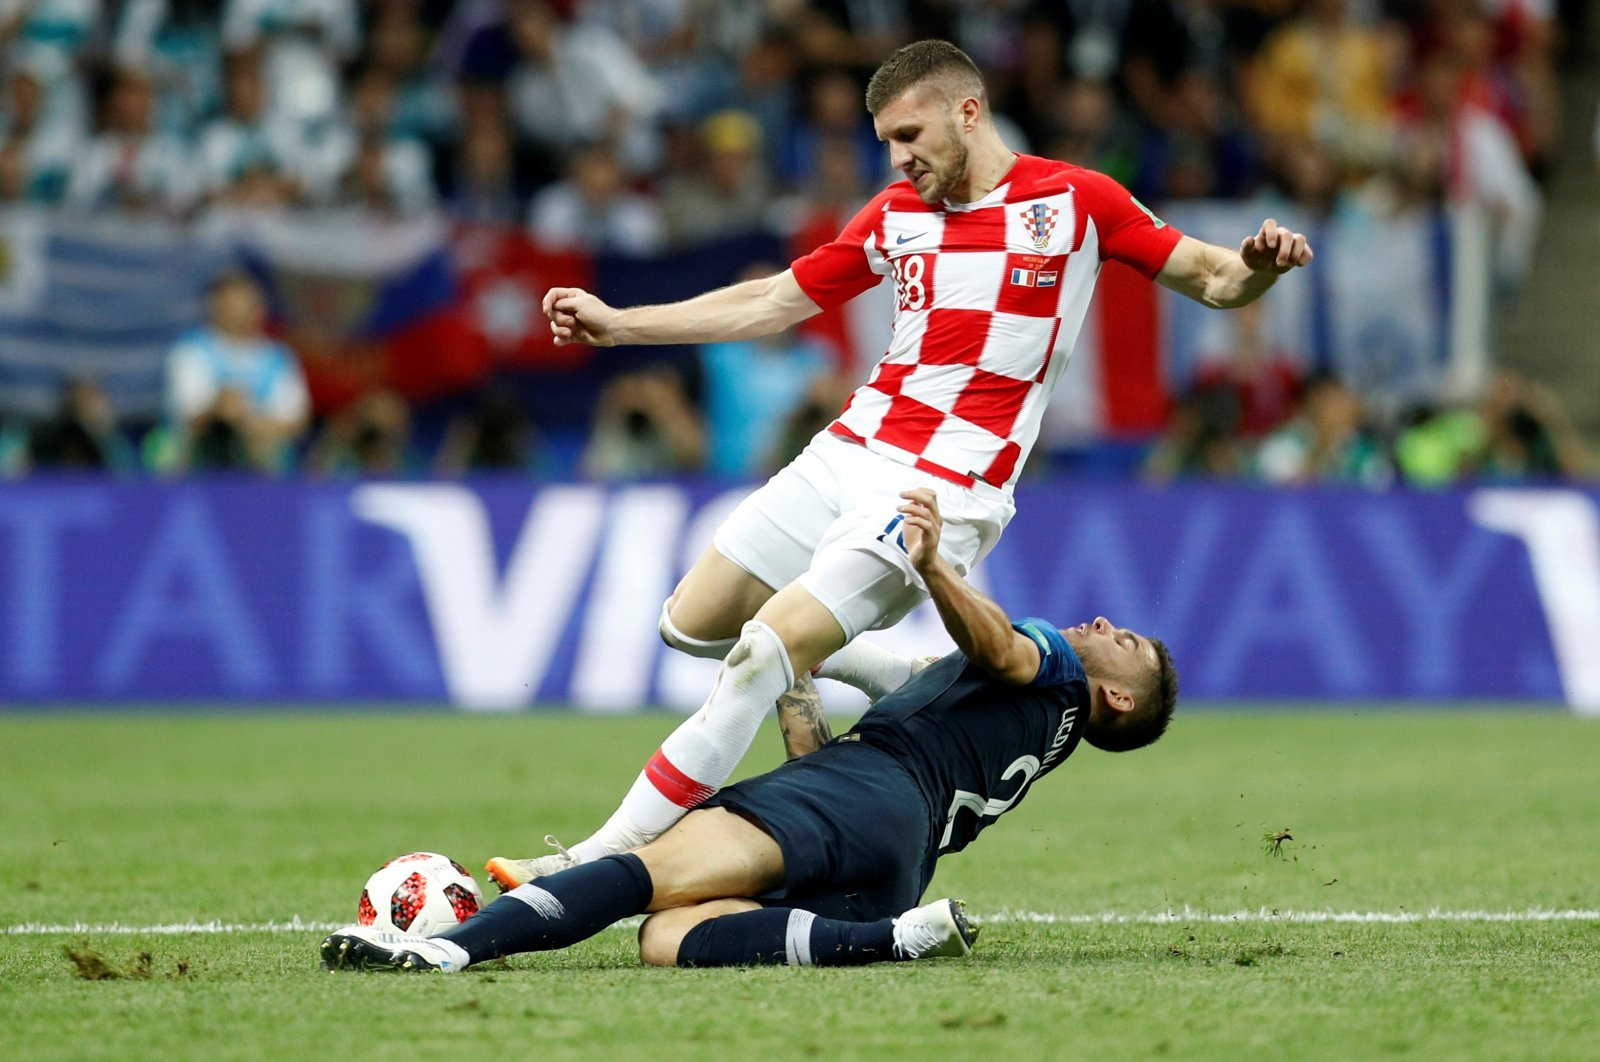 Manchester United should avoid signing overpriced Ante Rebic